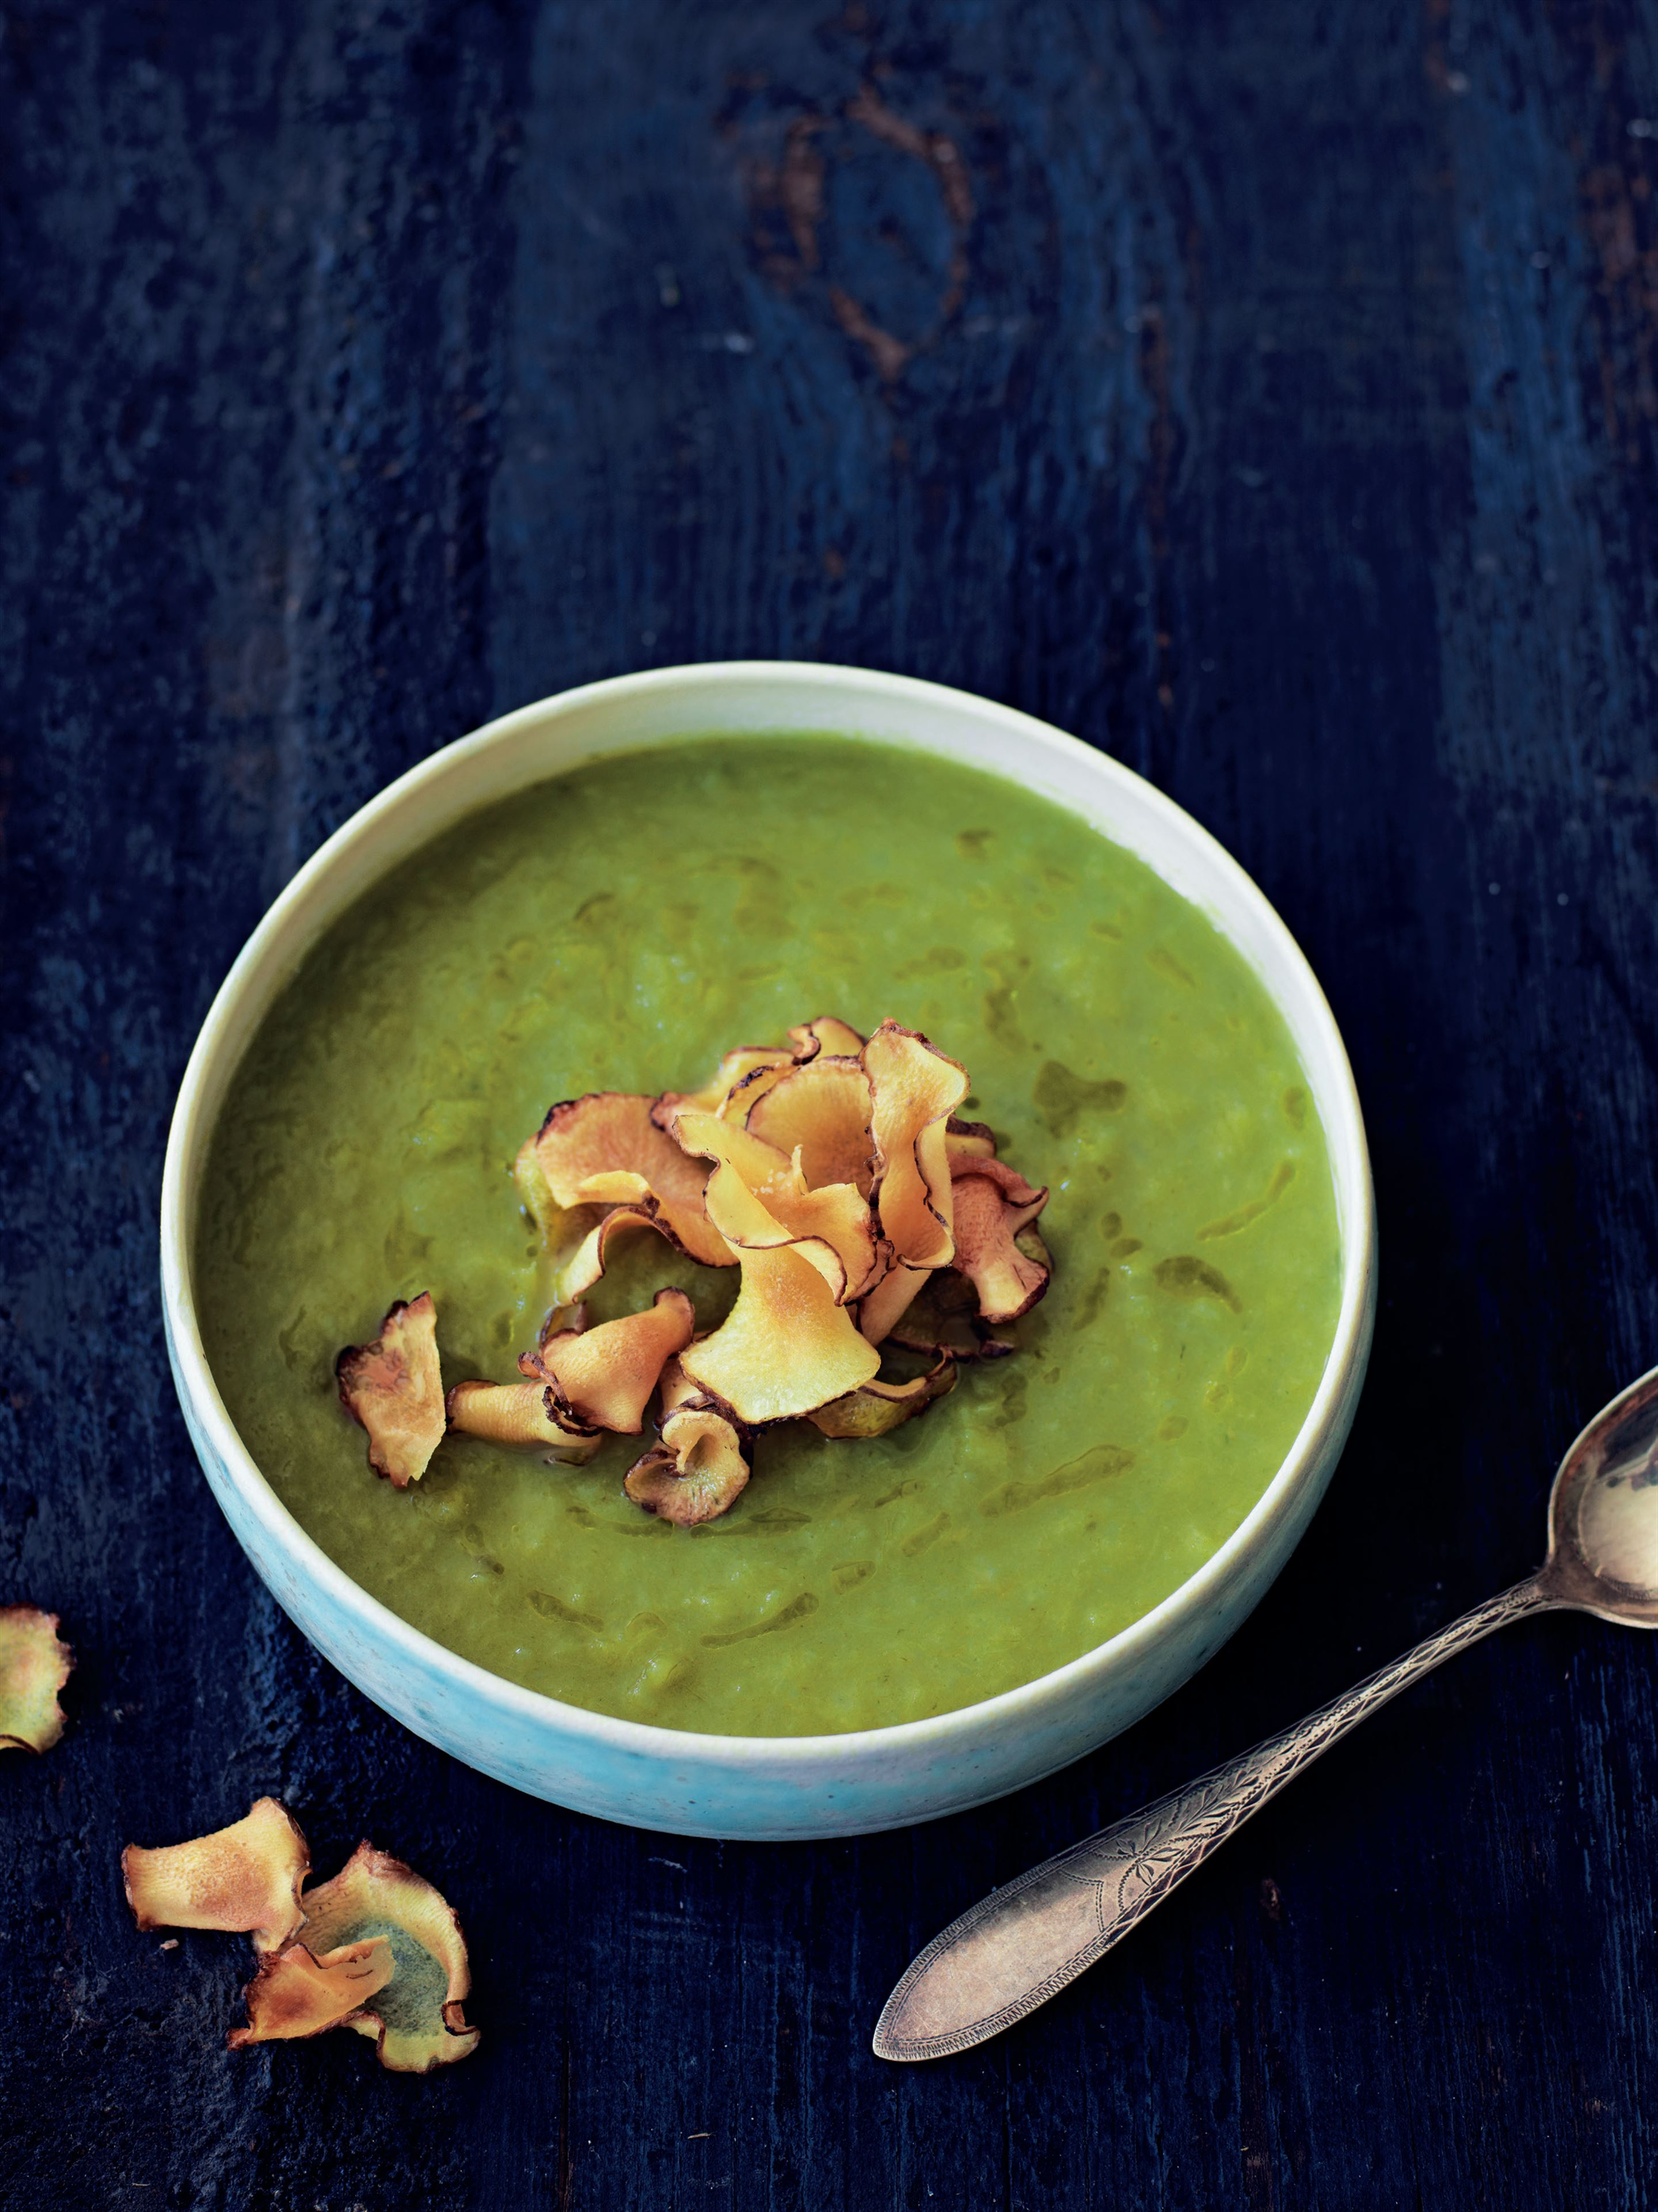 Jerusalem artichoke and leek soup with artichoke crisps